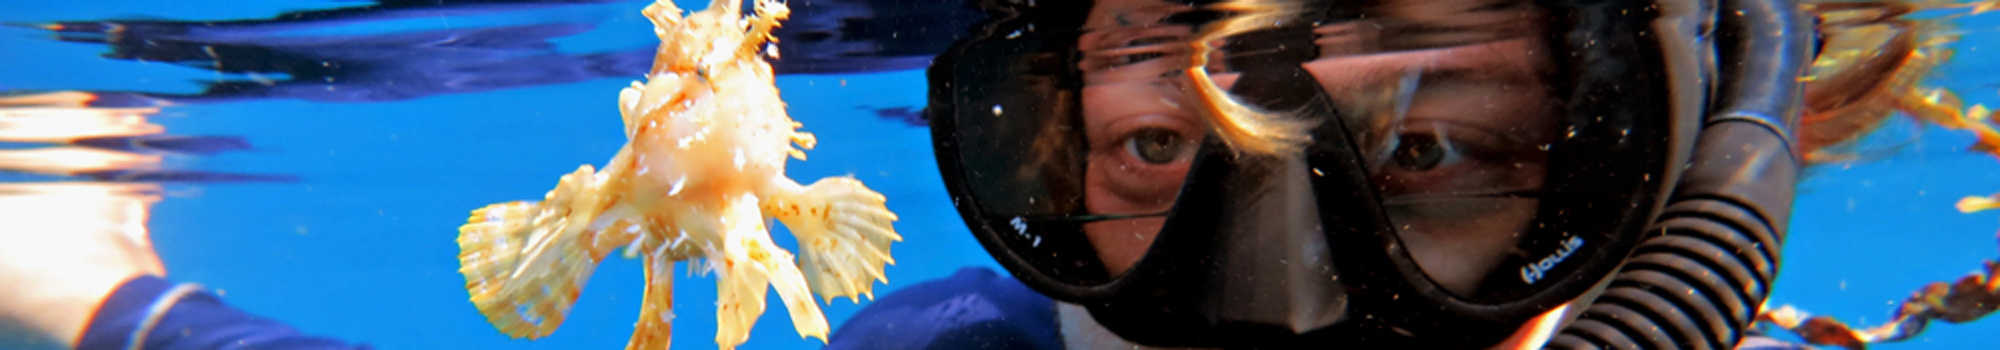 Atmosphere's marine biologist Daniel Geary with a sargassum fish on the Atmosphere house reef in the Philippines